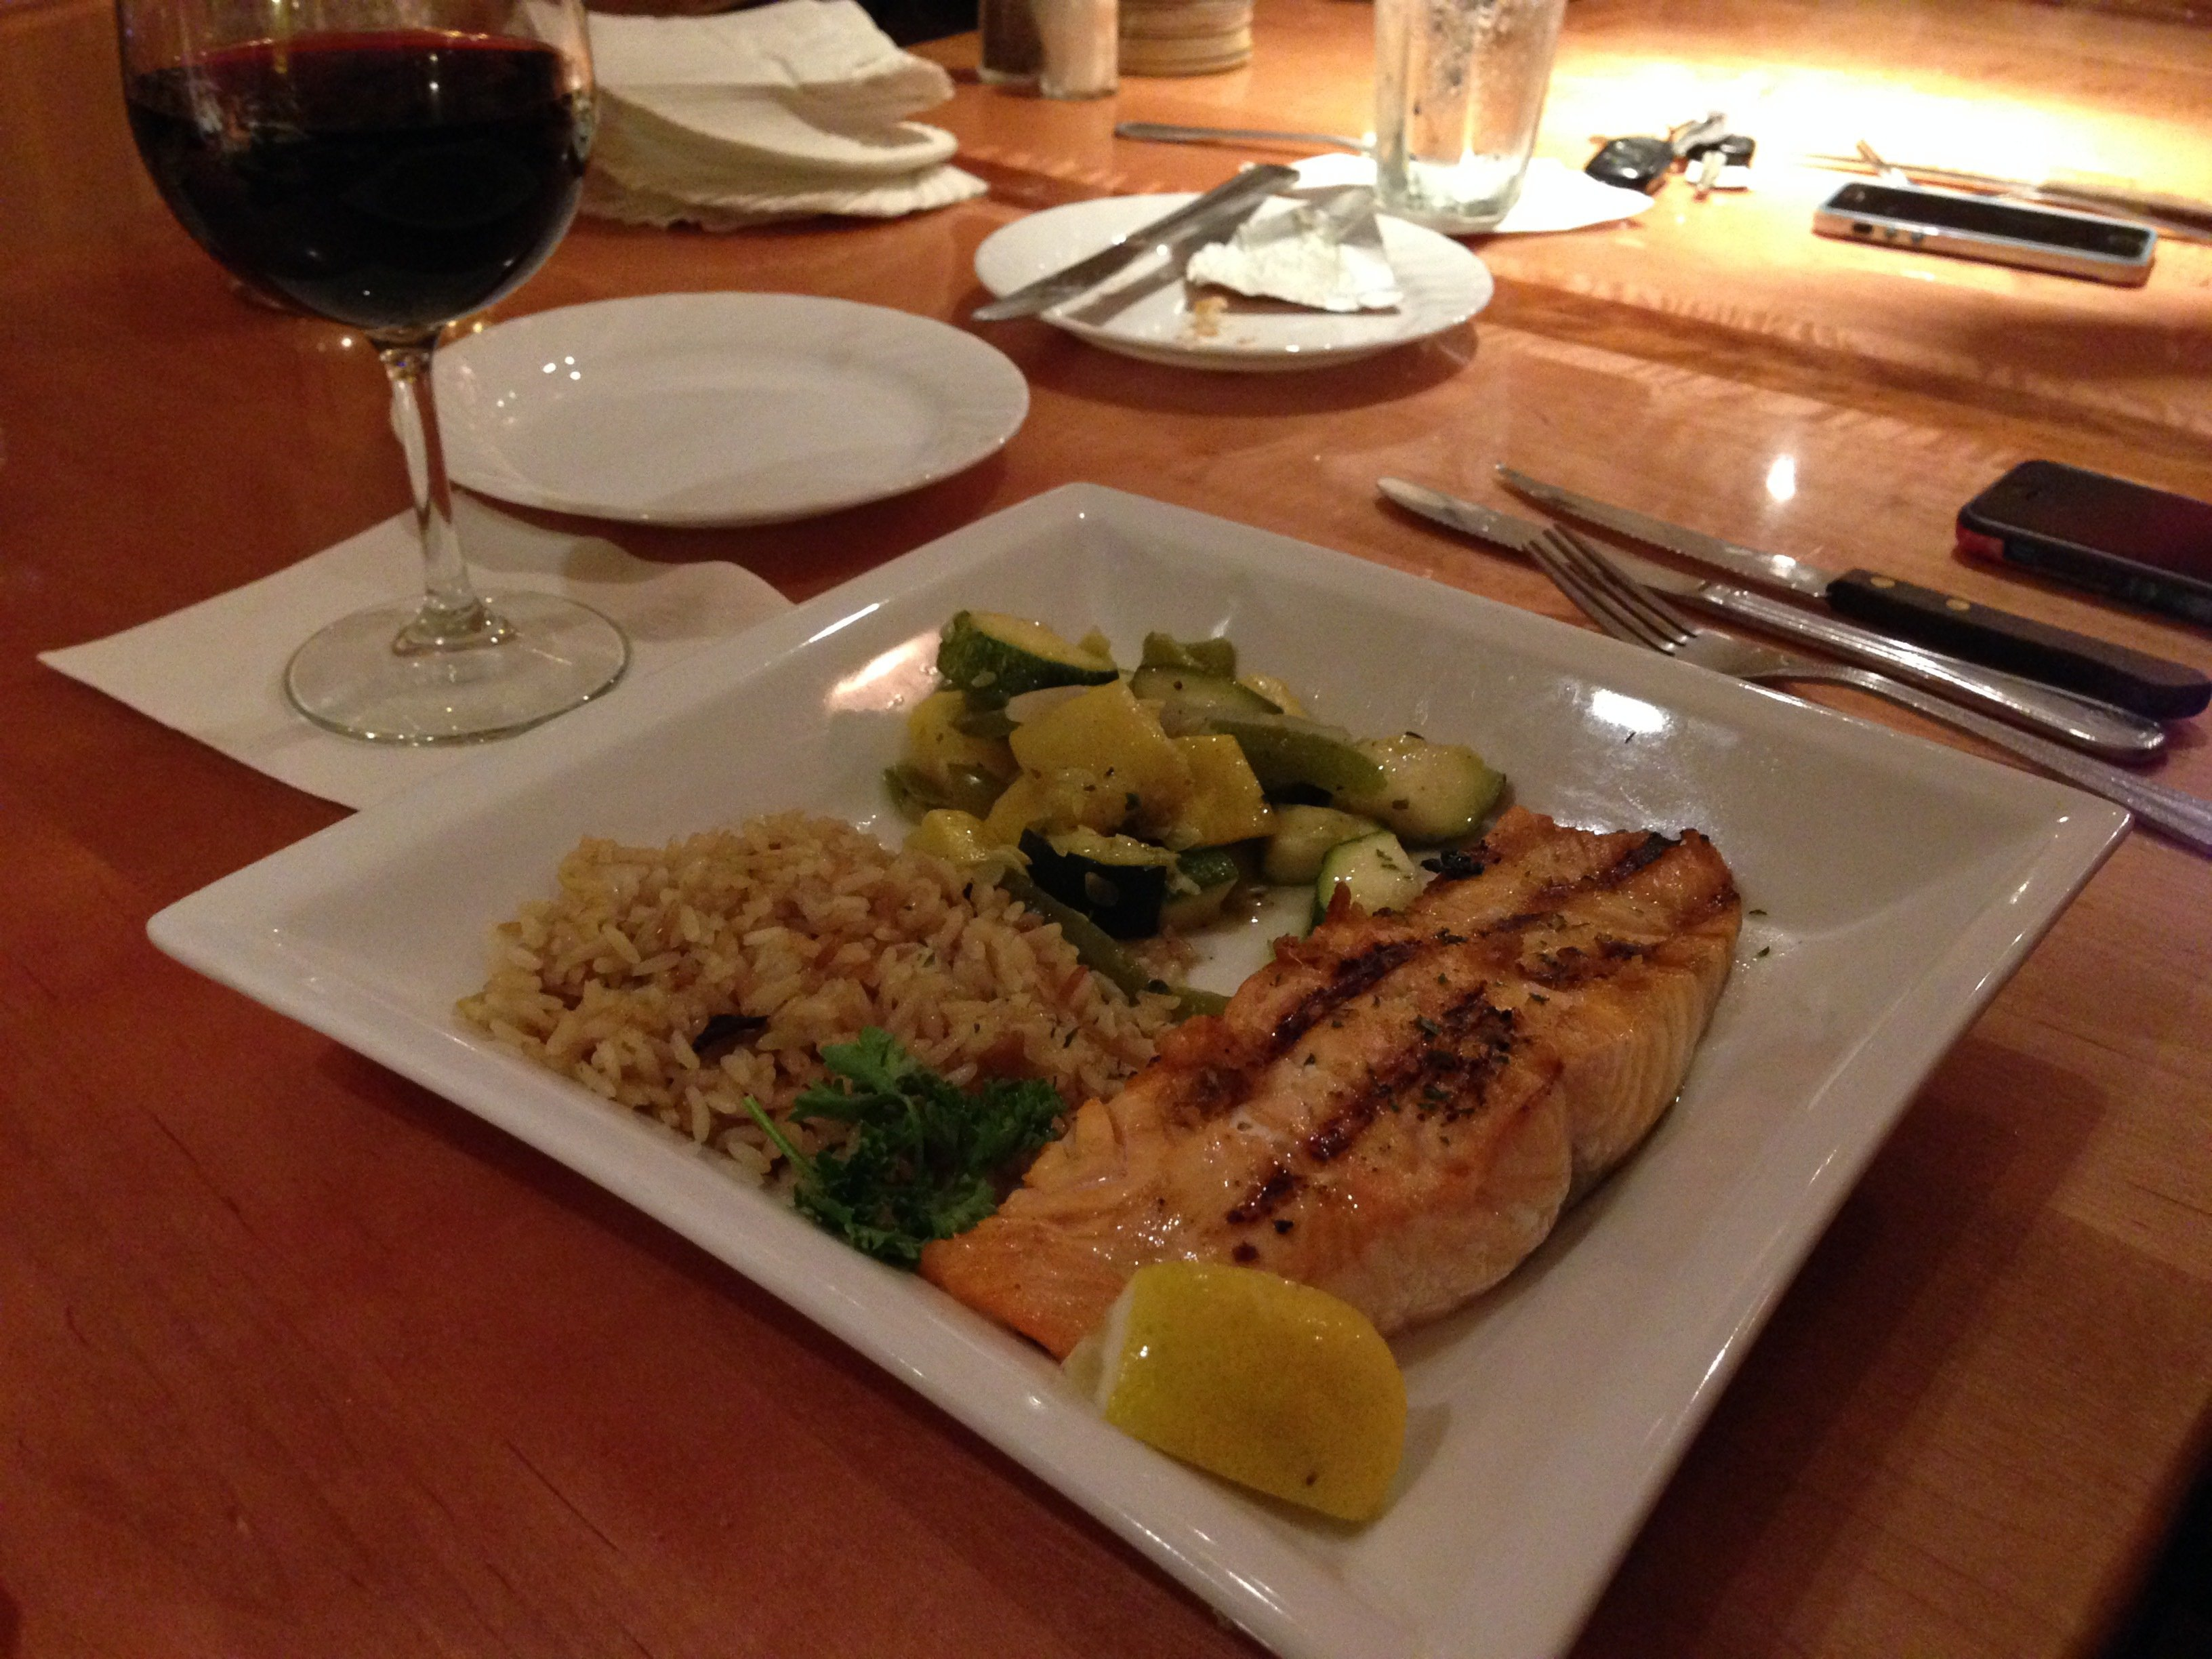 Charlmont Restaurant's grilled salmon